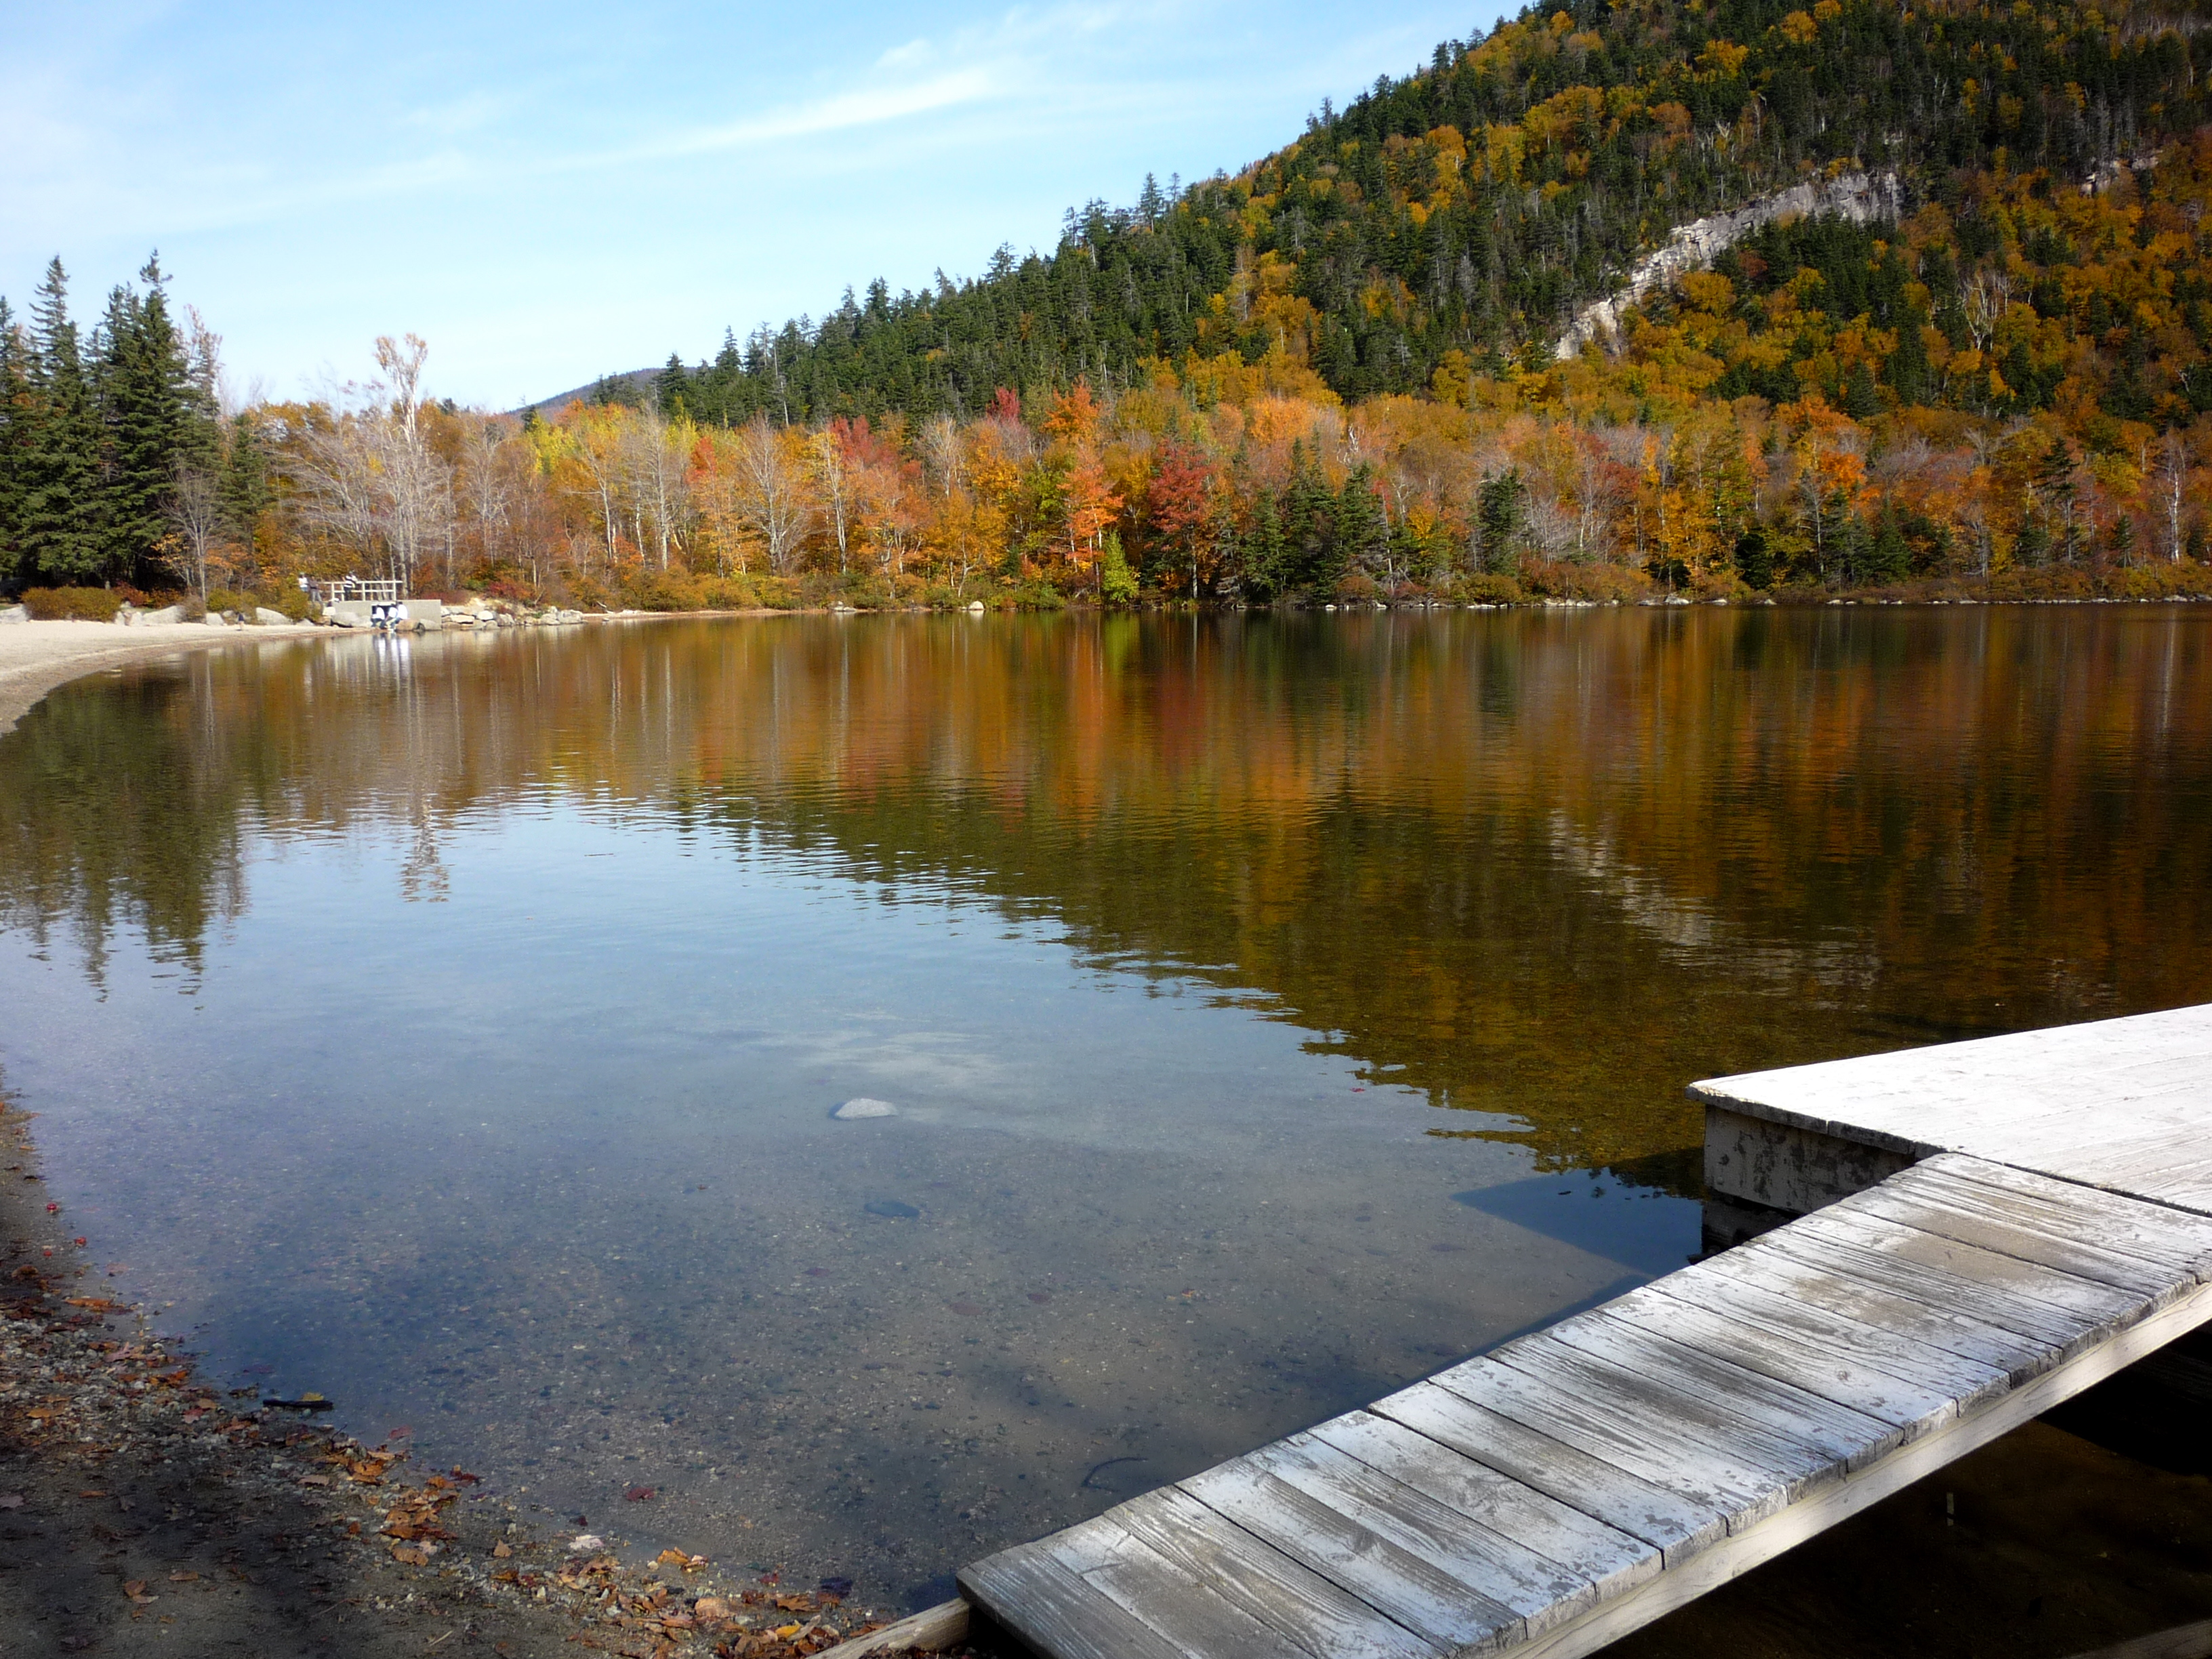 Visiting Idyllic Echo Lake Beach in the White Mountains of New Hampshire